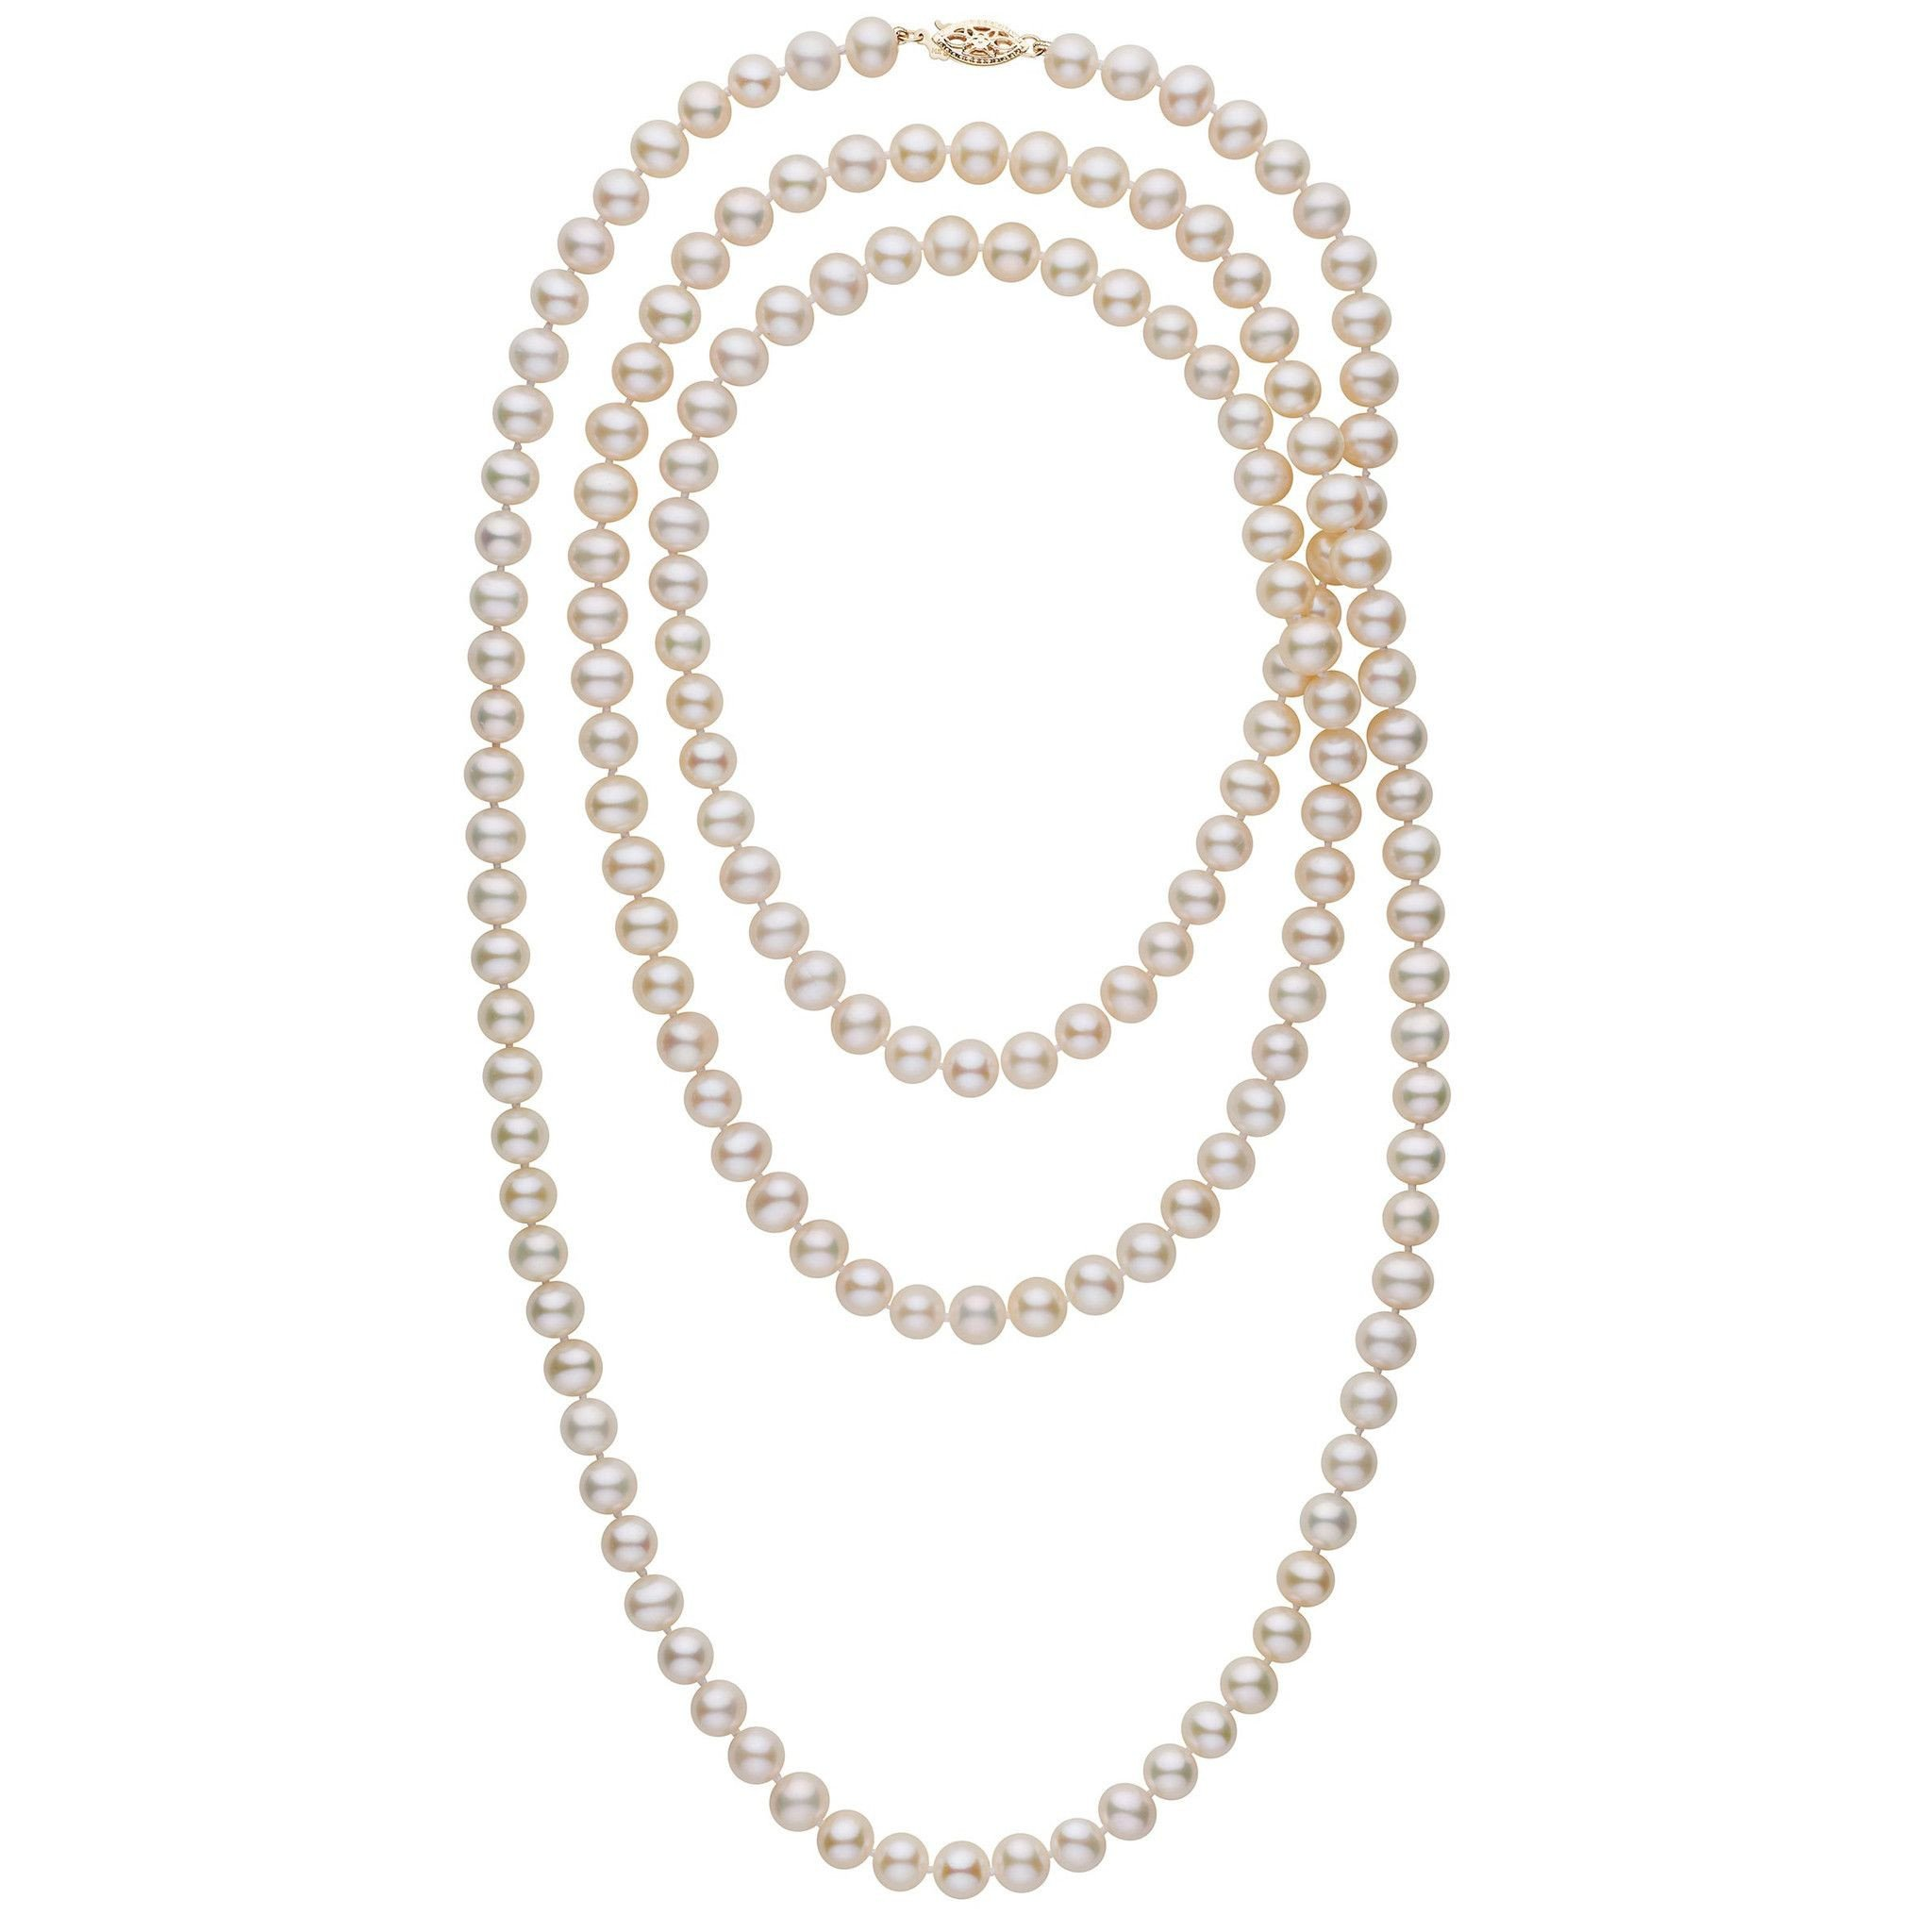 52-inch 7.5-8.0 mm AA+ White Freshwater Pearl Necklace by Pearl Paradise